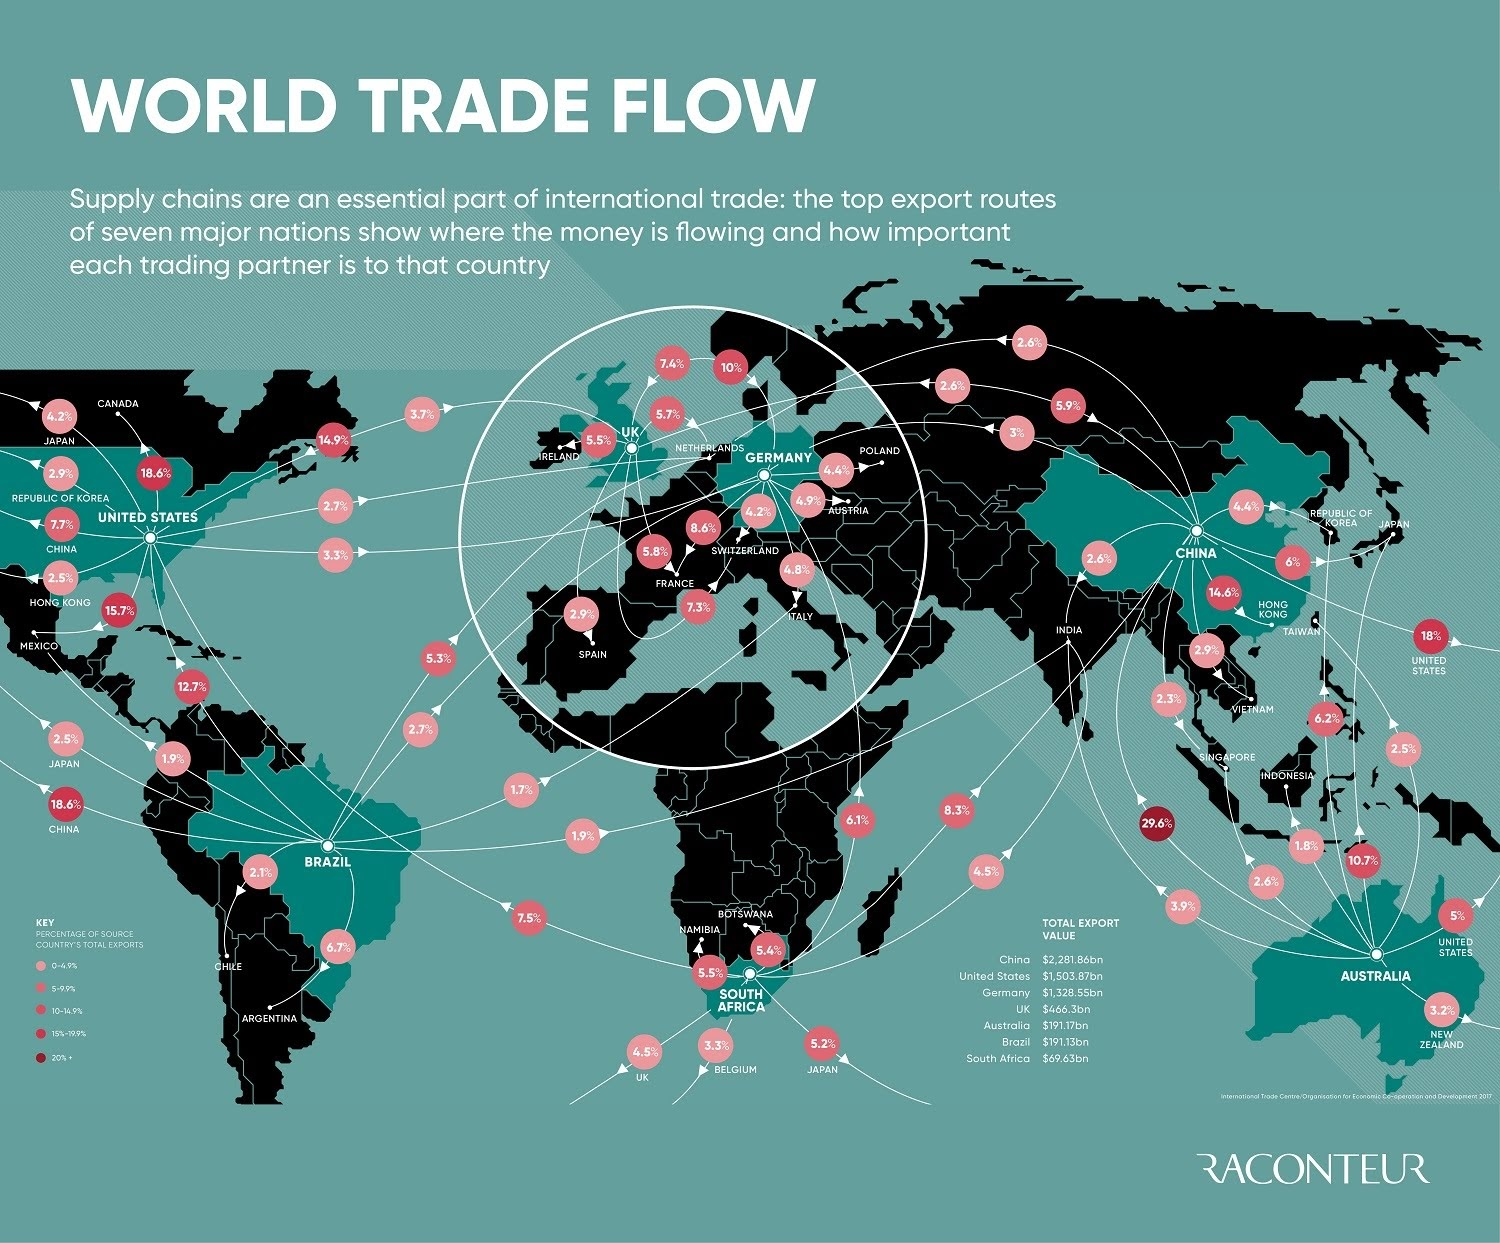 World trade flow #infographic